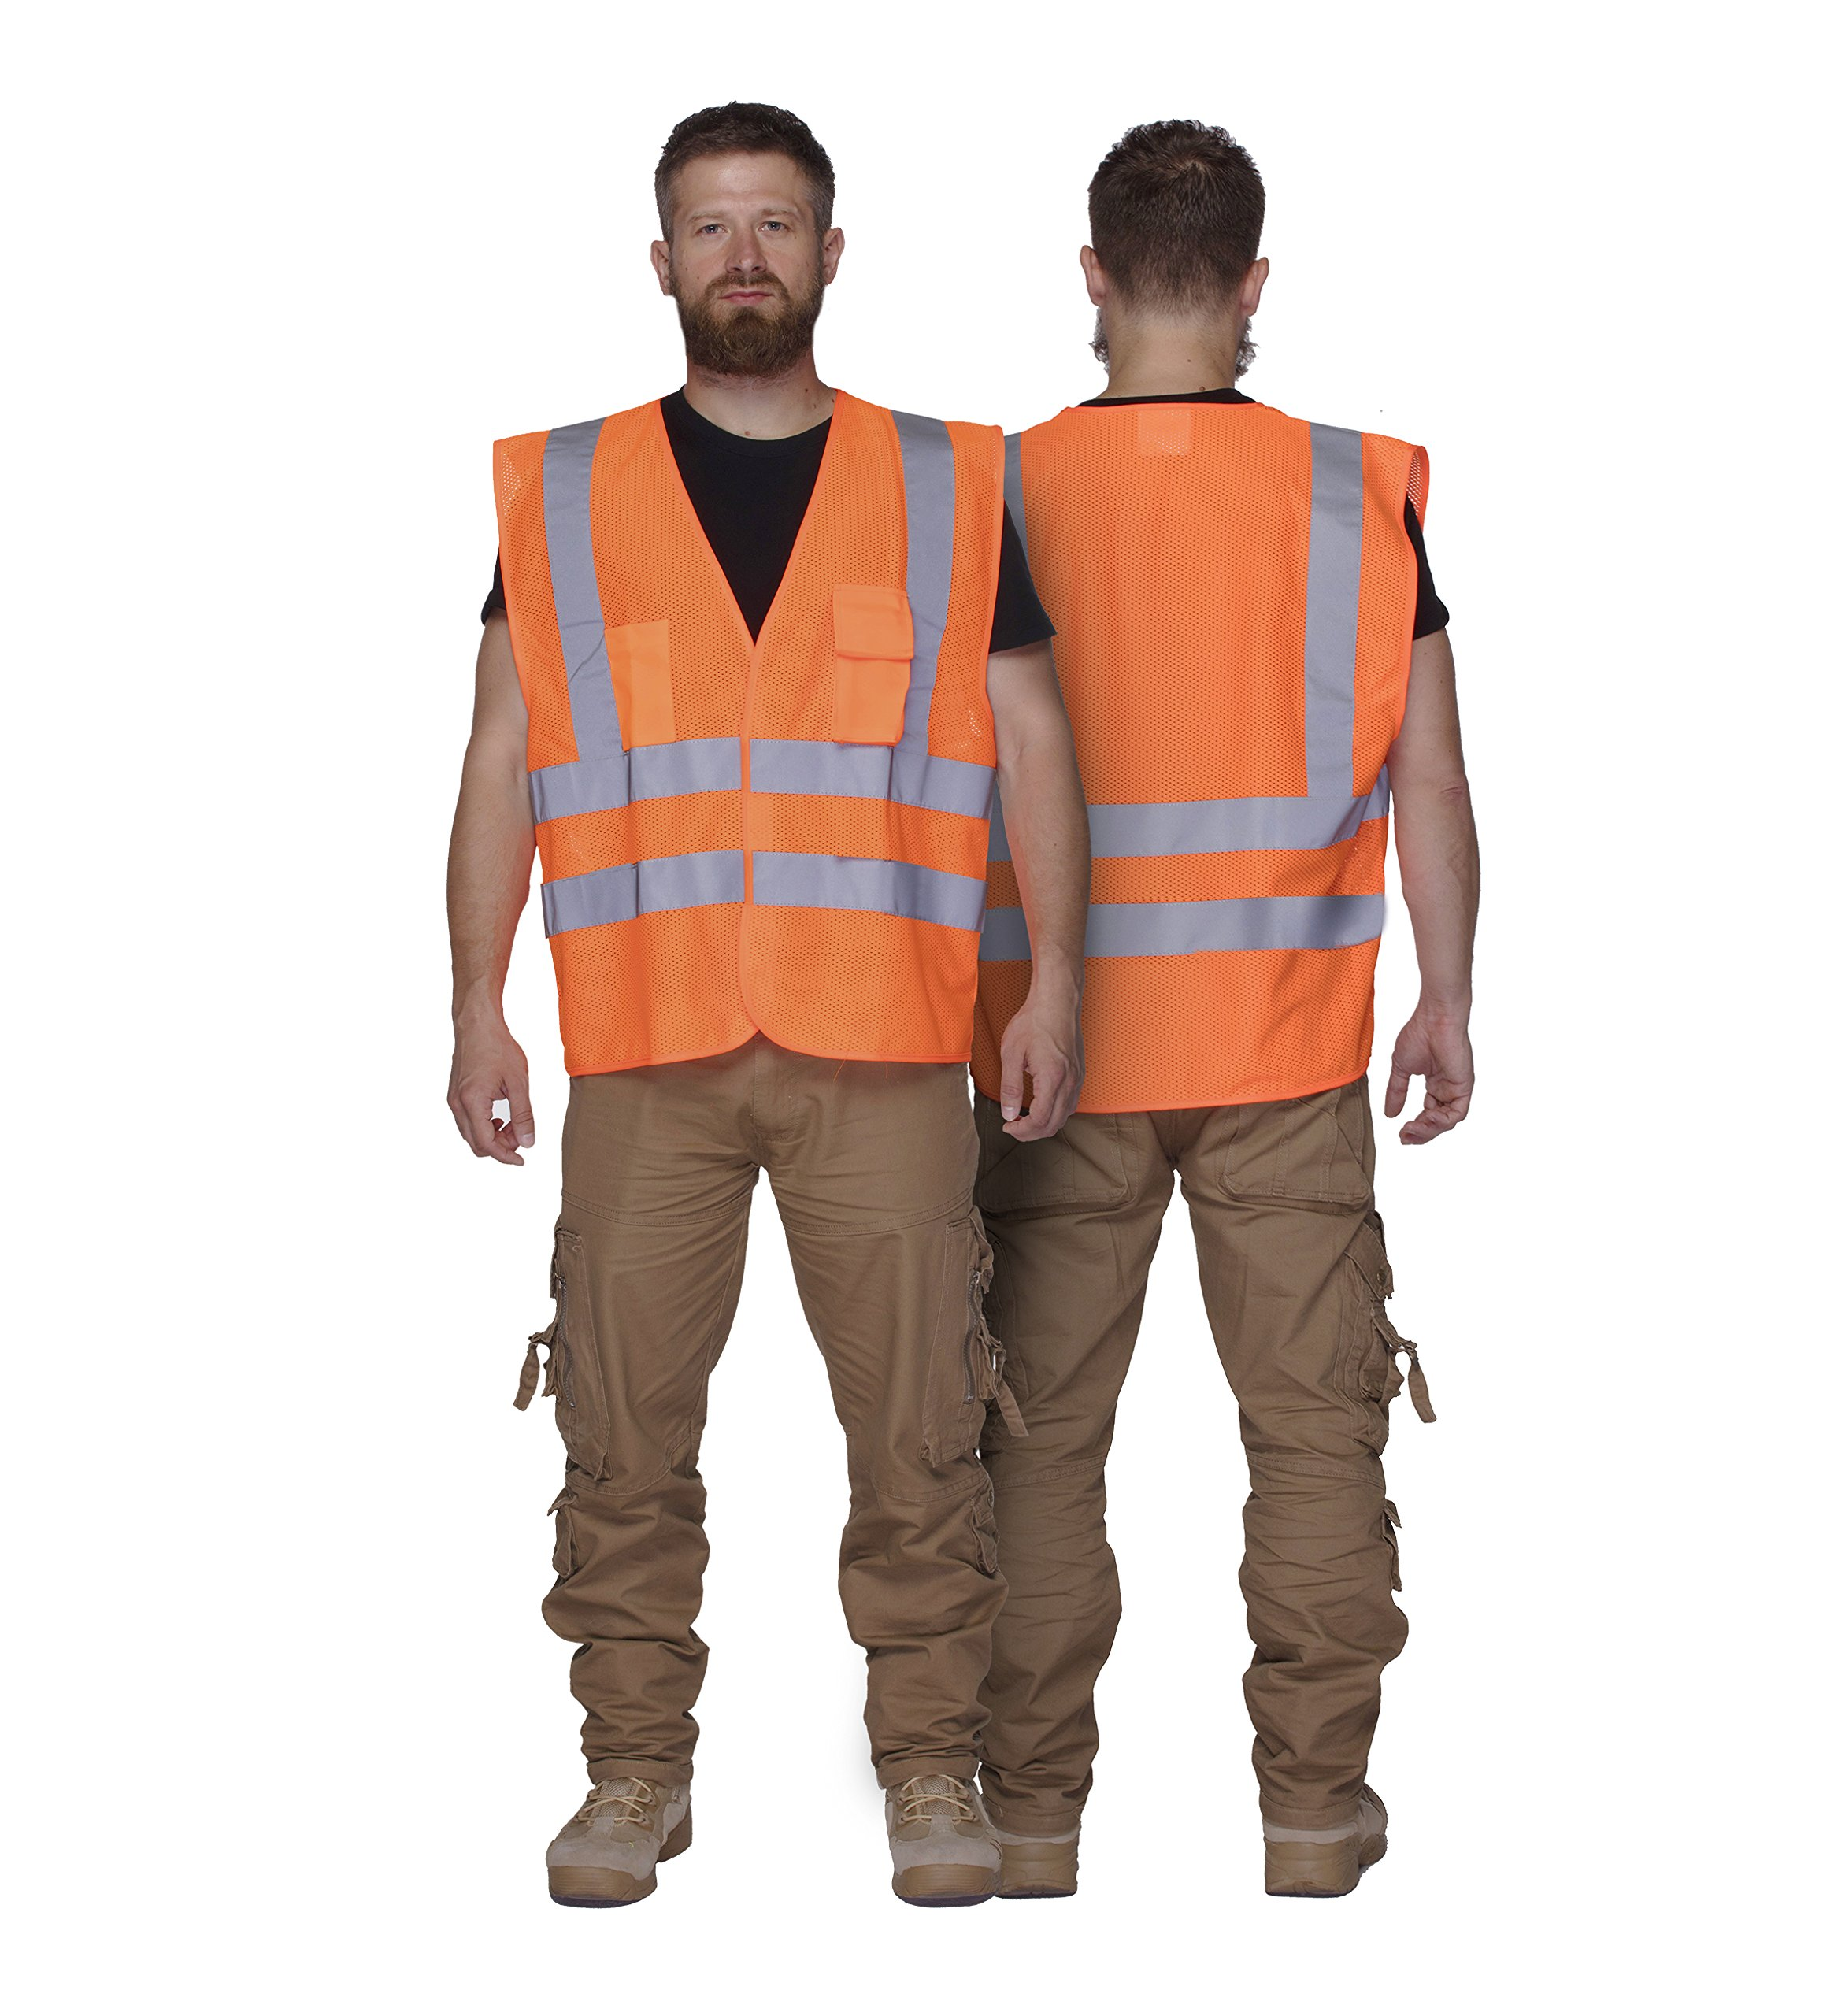 XSHIELD XS0006,High Visibility Mesh Safety Vest with Silver Stripe,ANSI/ISEA 107-2015 Type R Class2 Not FR,Pack of 5 (XL, Orange) by X-Shield (Image #3)